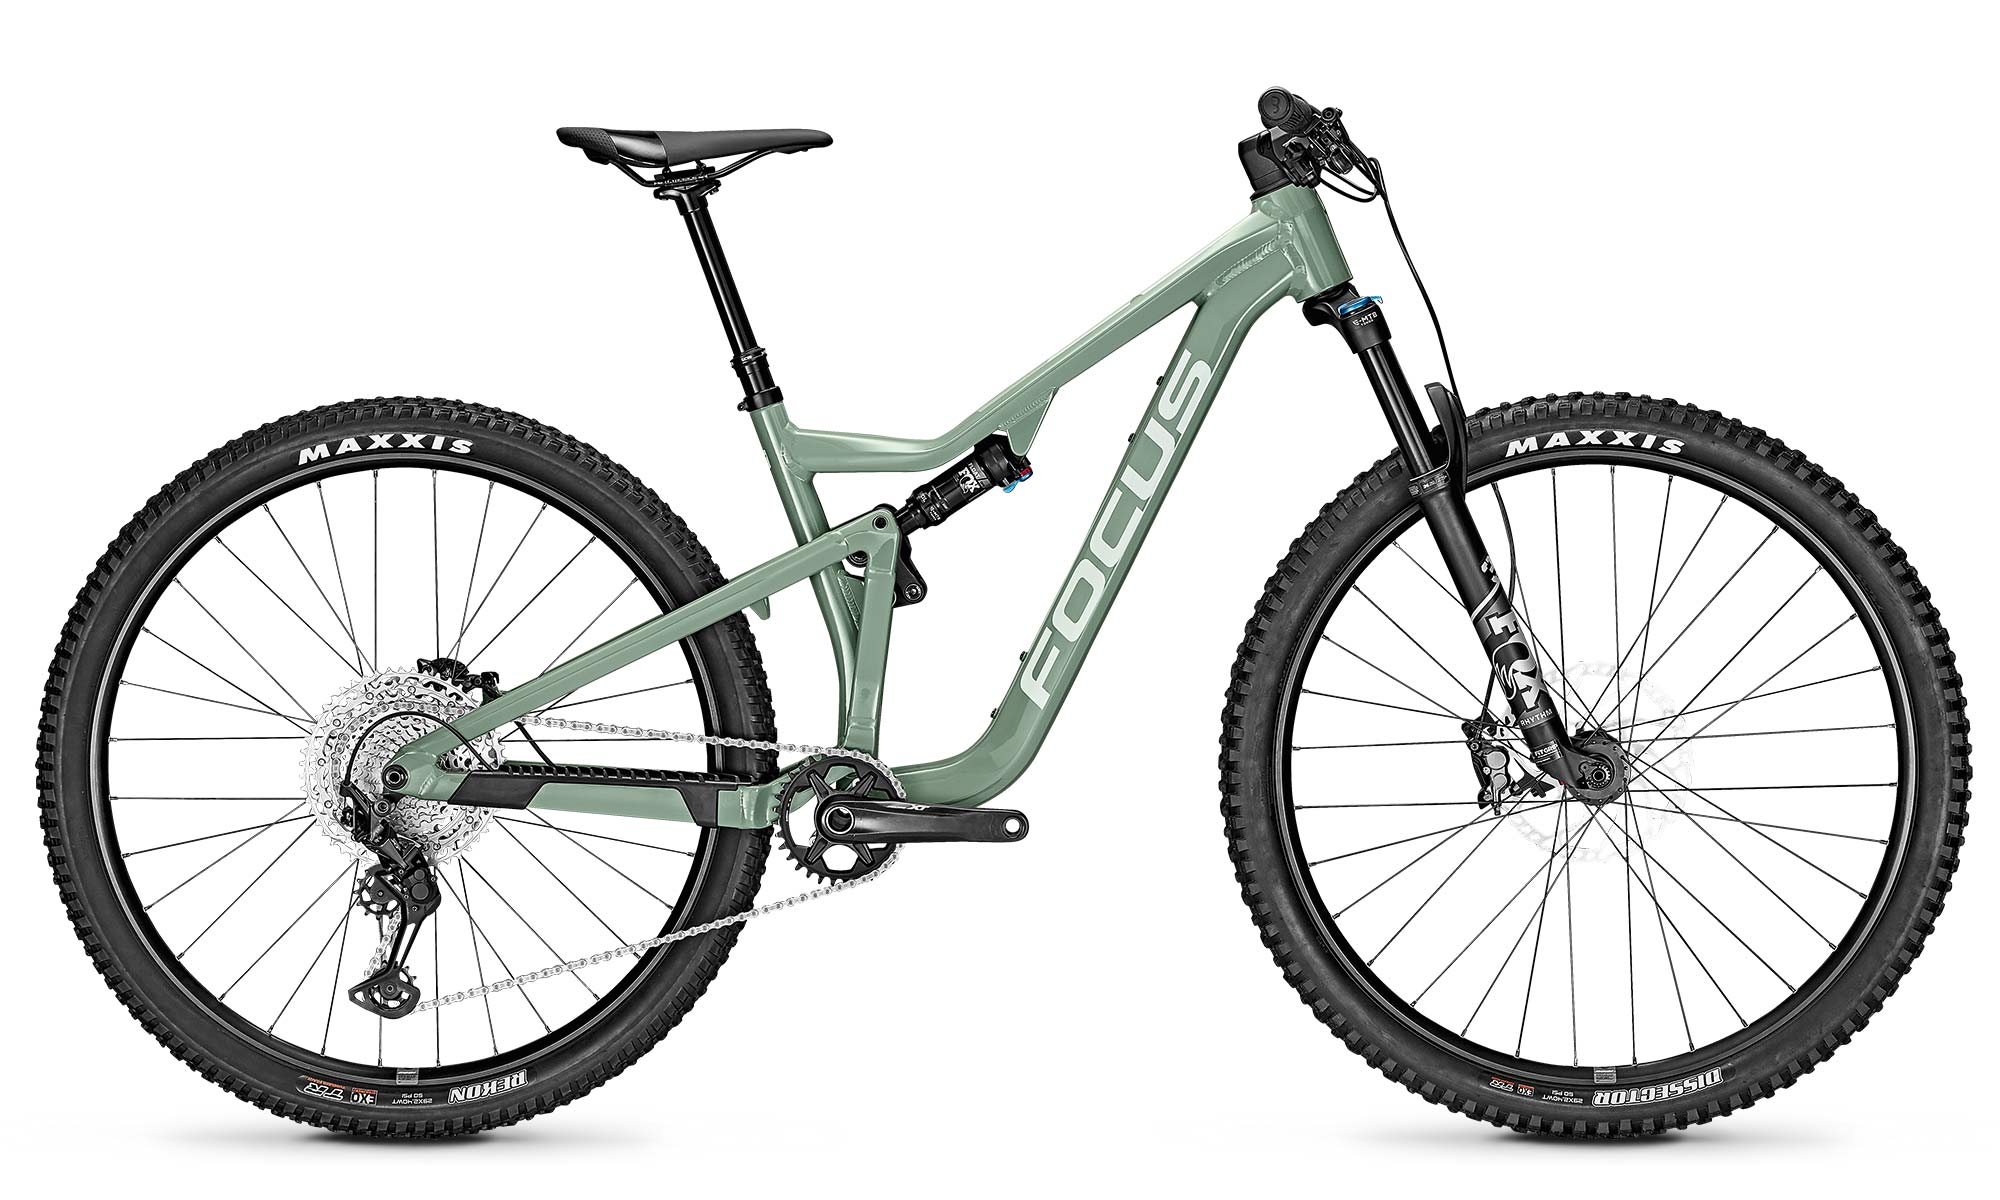 2021 Focus THRON affordable alloy 130mm 29er trail MTB mountain bike,6.9 complete